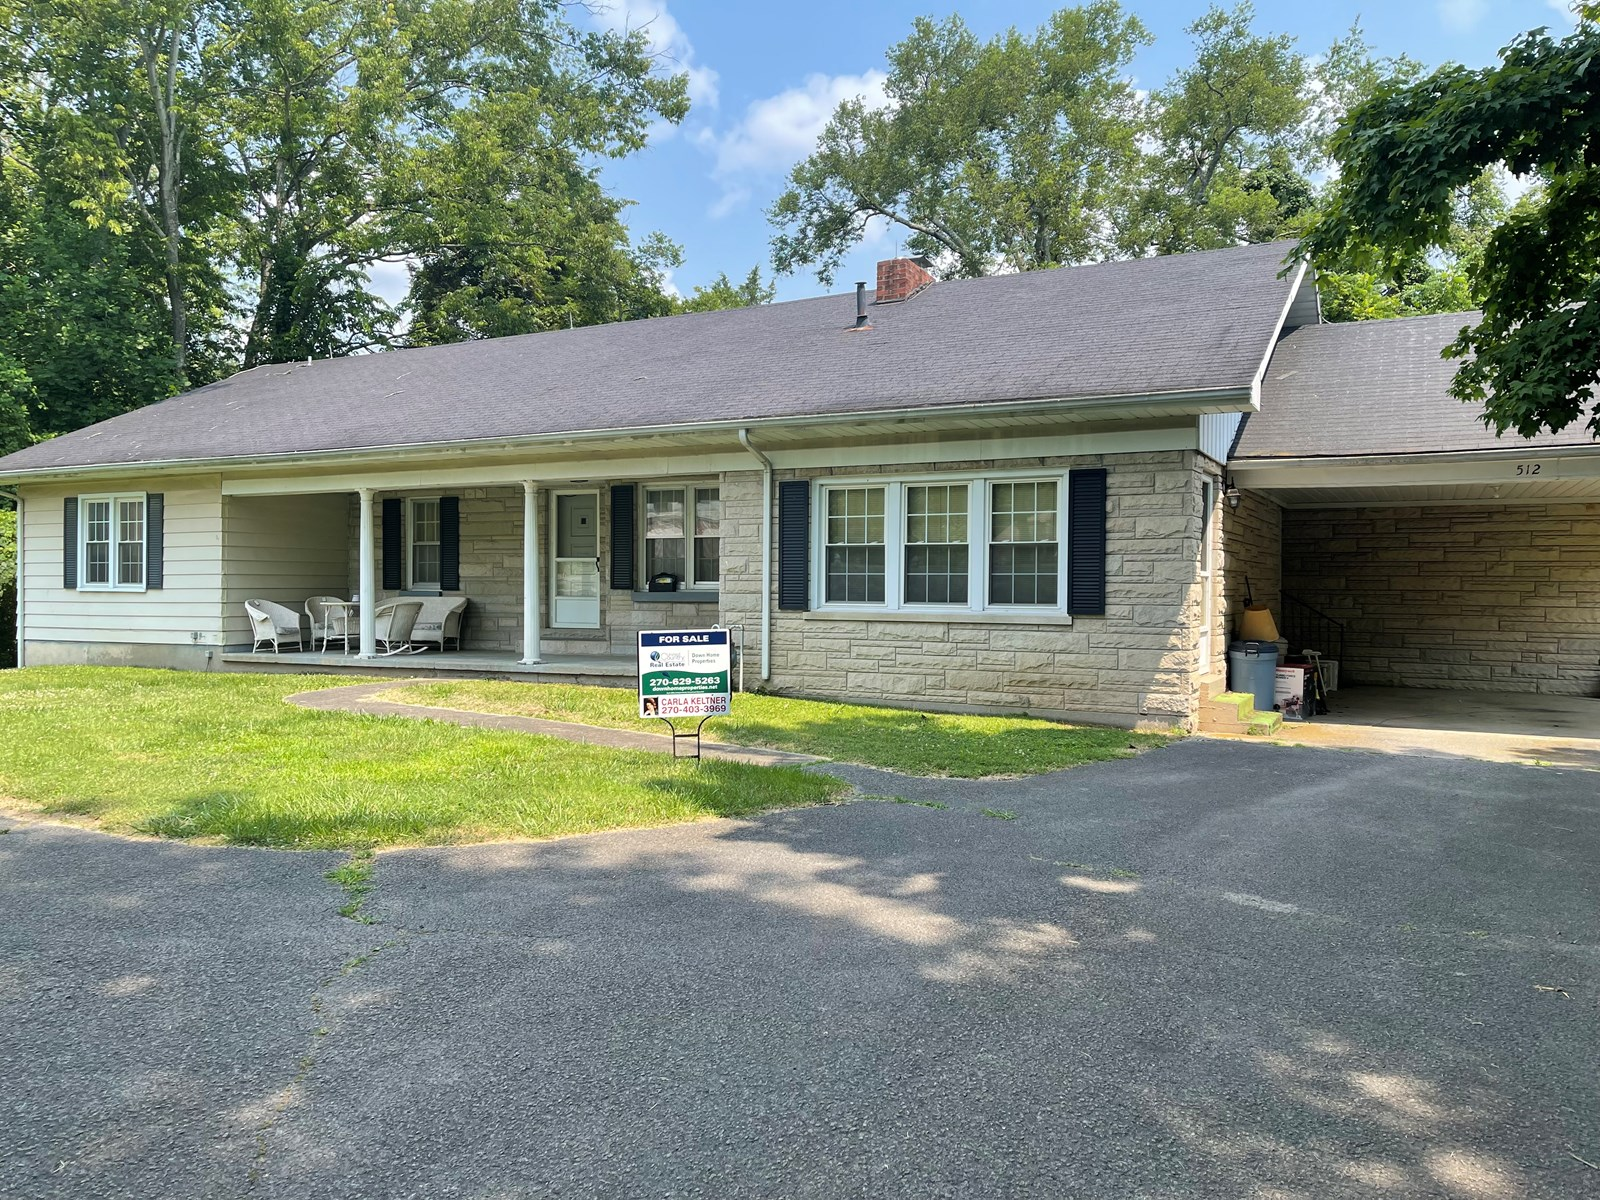 2 bed 2 bath house in Adair County, KY